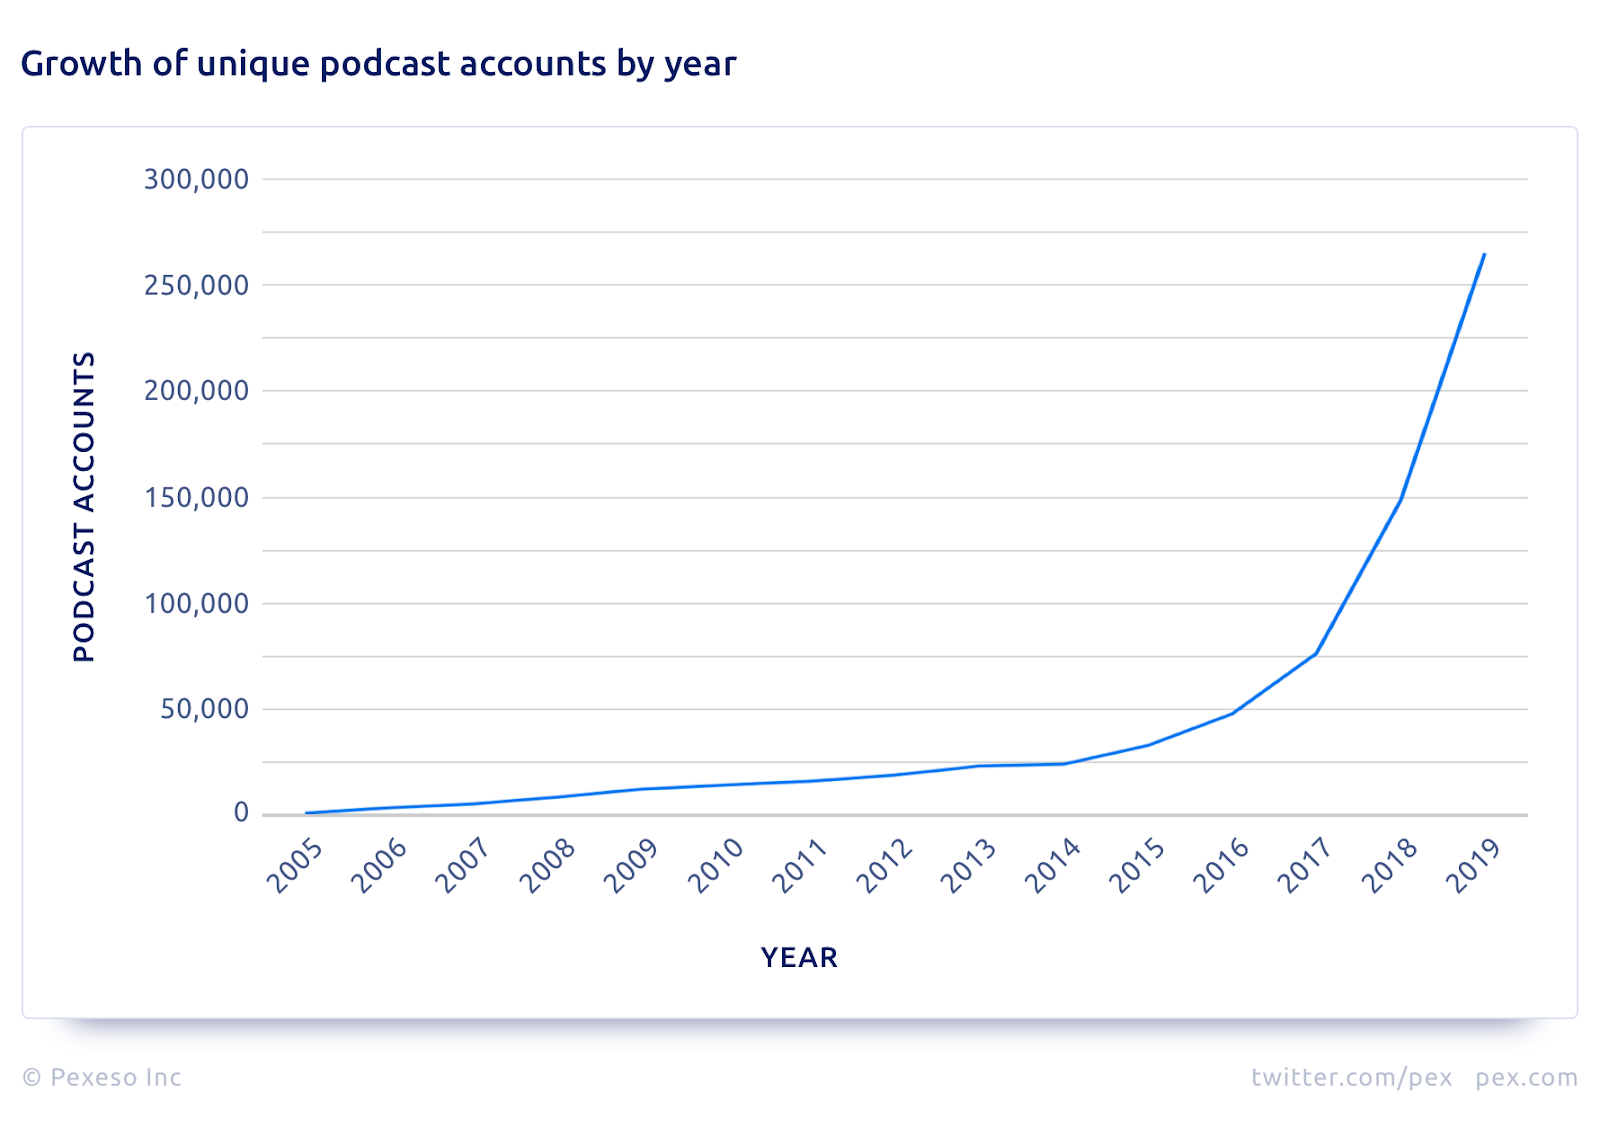 Podcast-Accounts-per-Year